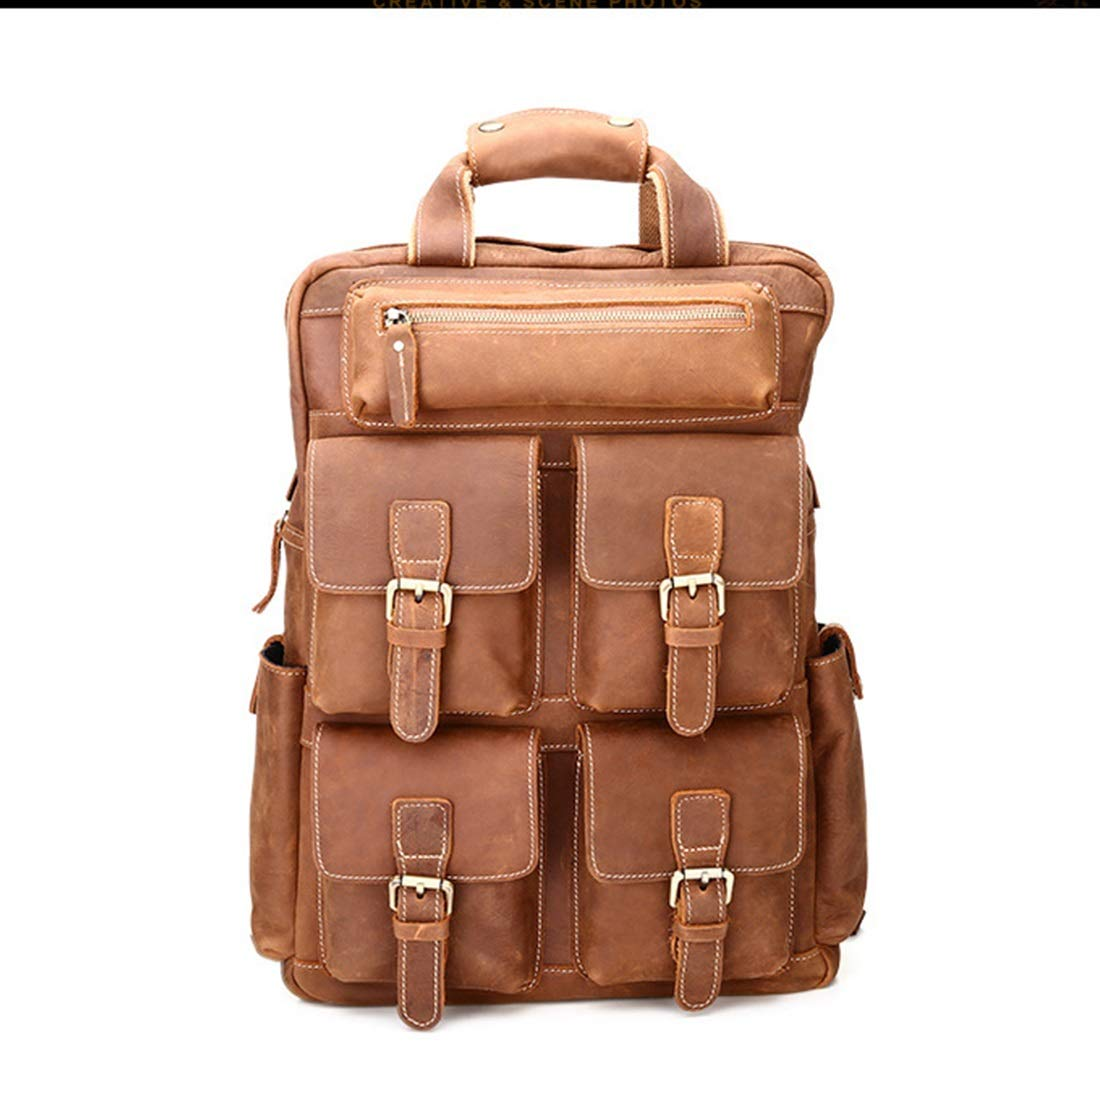 Amabubblezing Mens Handcrafted Vintage Real Leather Vintage Laptop Backpack Shoulder Bag Multi Pockets Travel Sports Bag